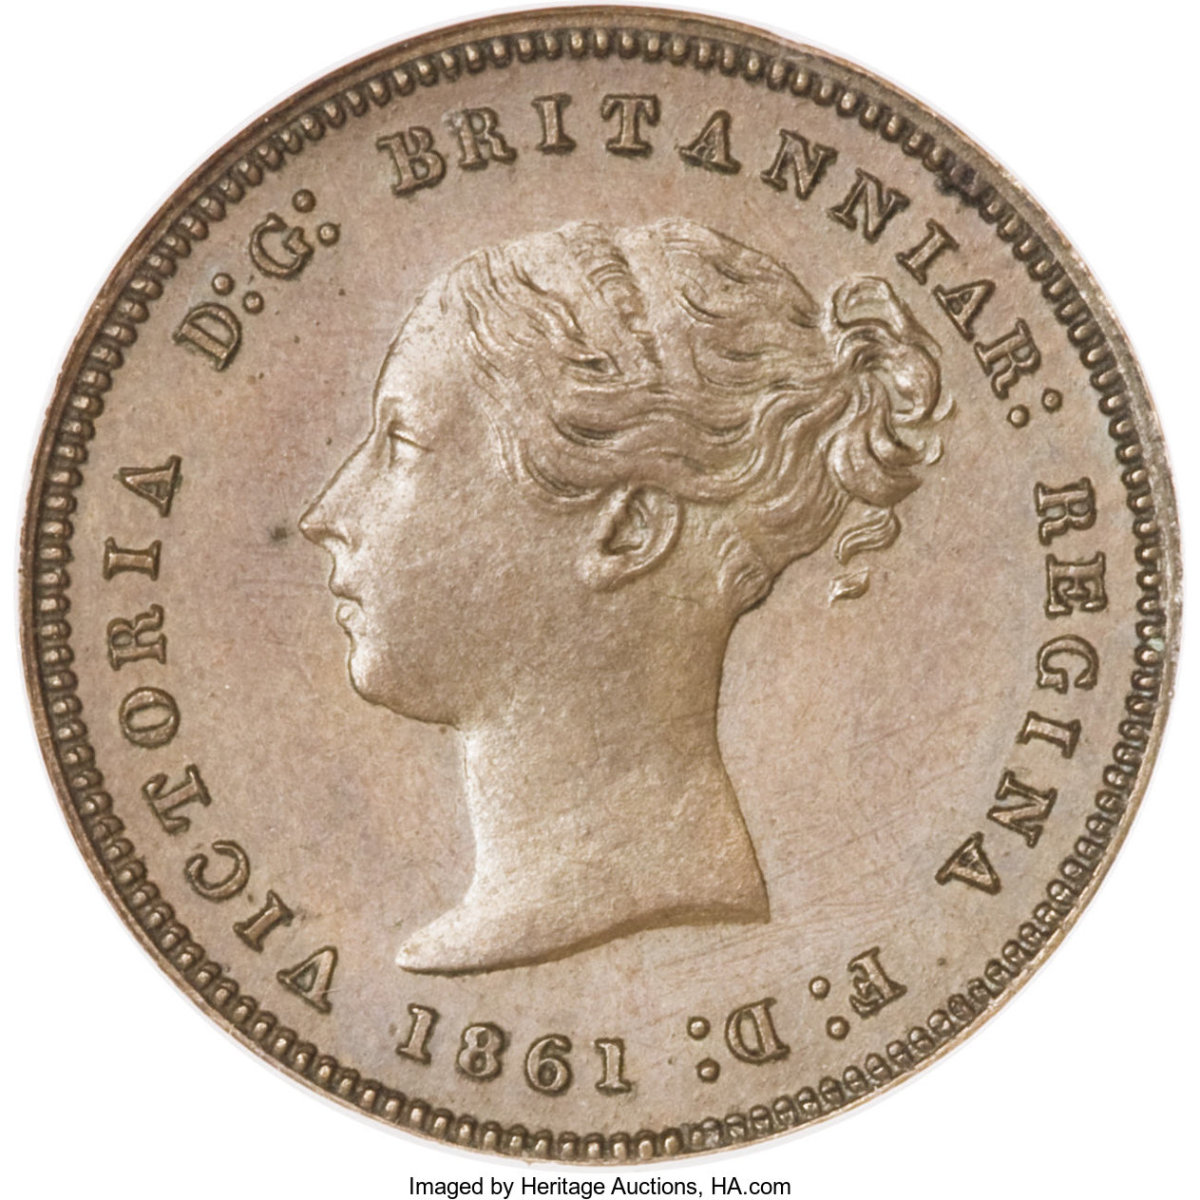 Obverse of 1841 coin featuring the bust of young Queen Victoria. (Image courtesy of Heritage Auctions.)